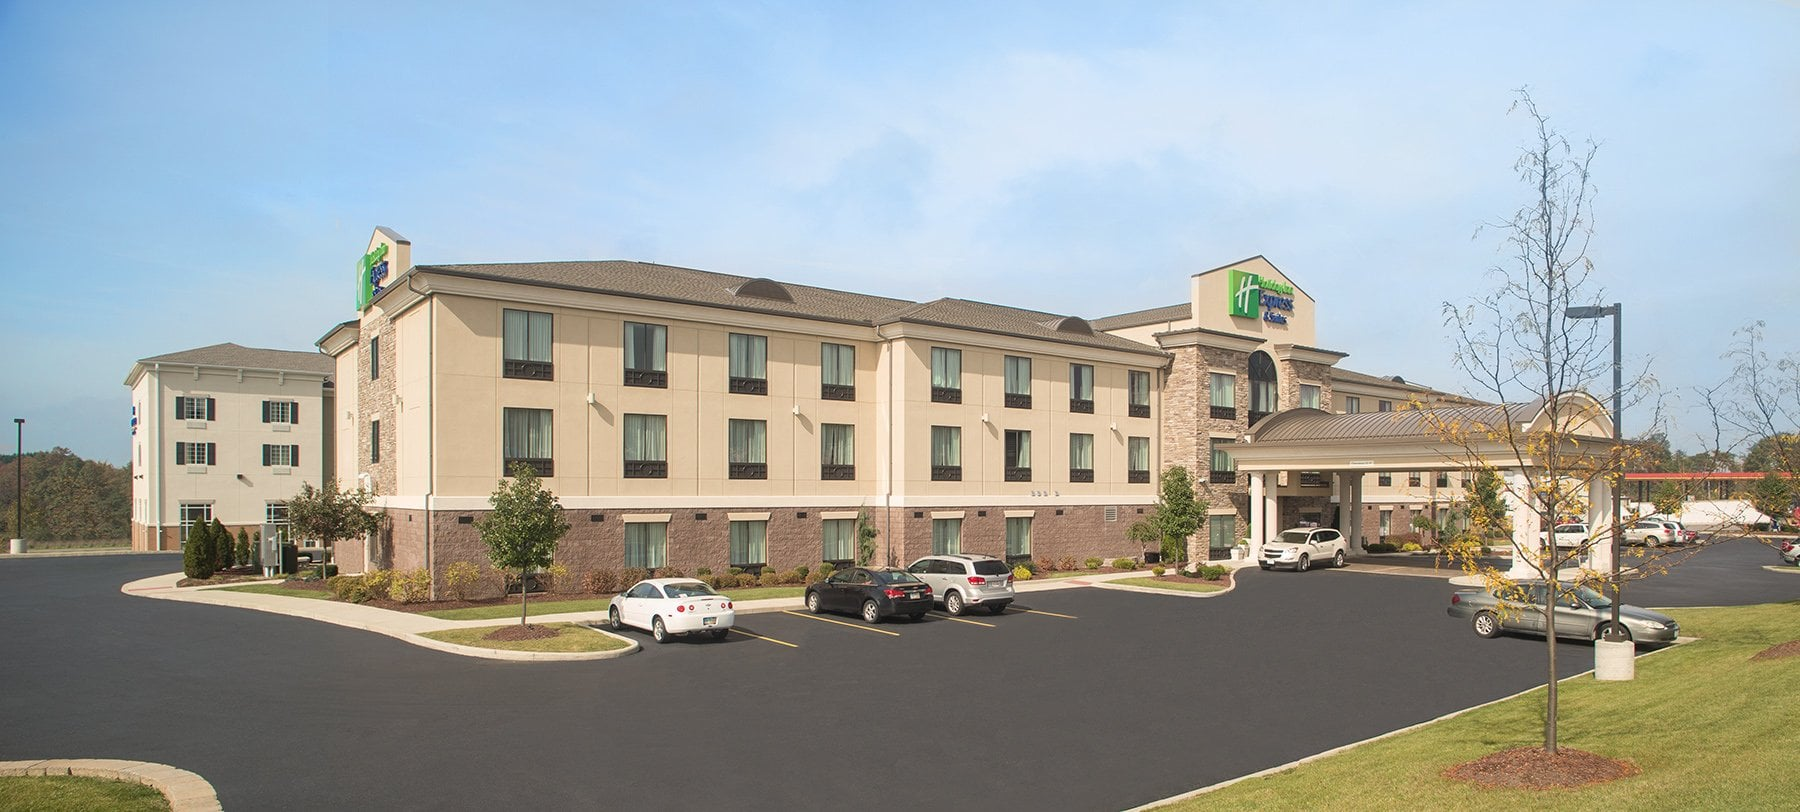 Holiday Inn Express new hotel